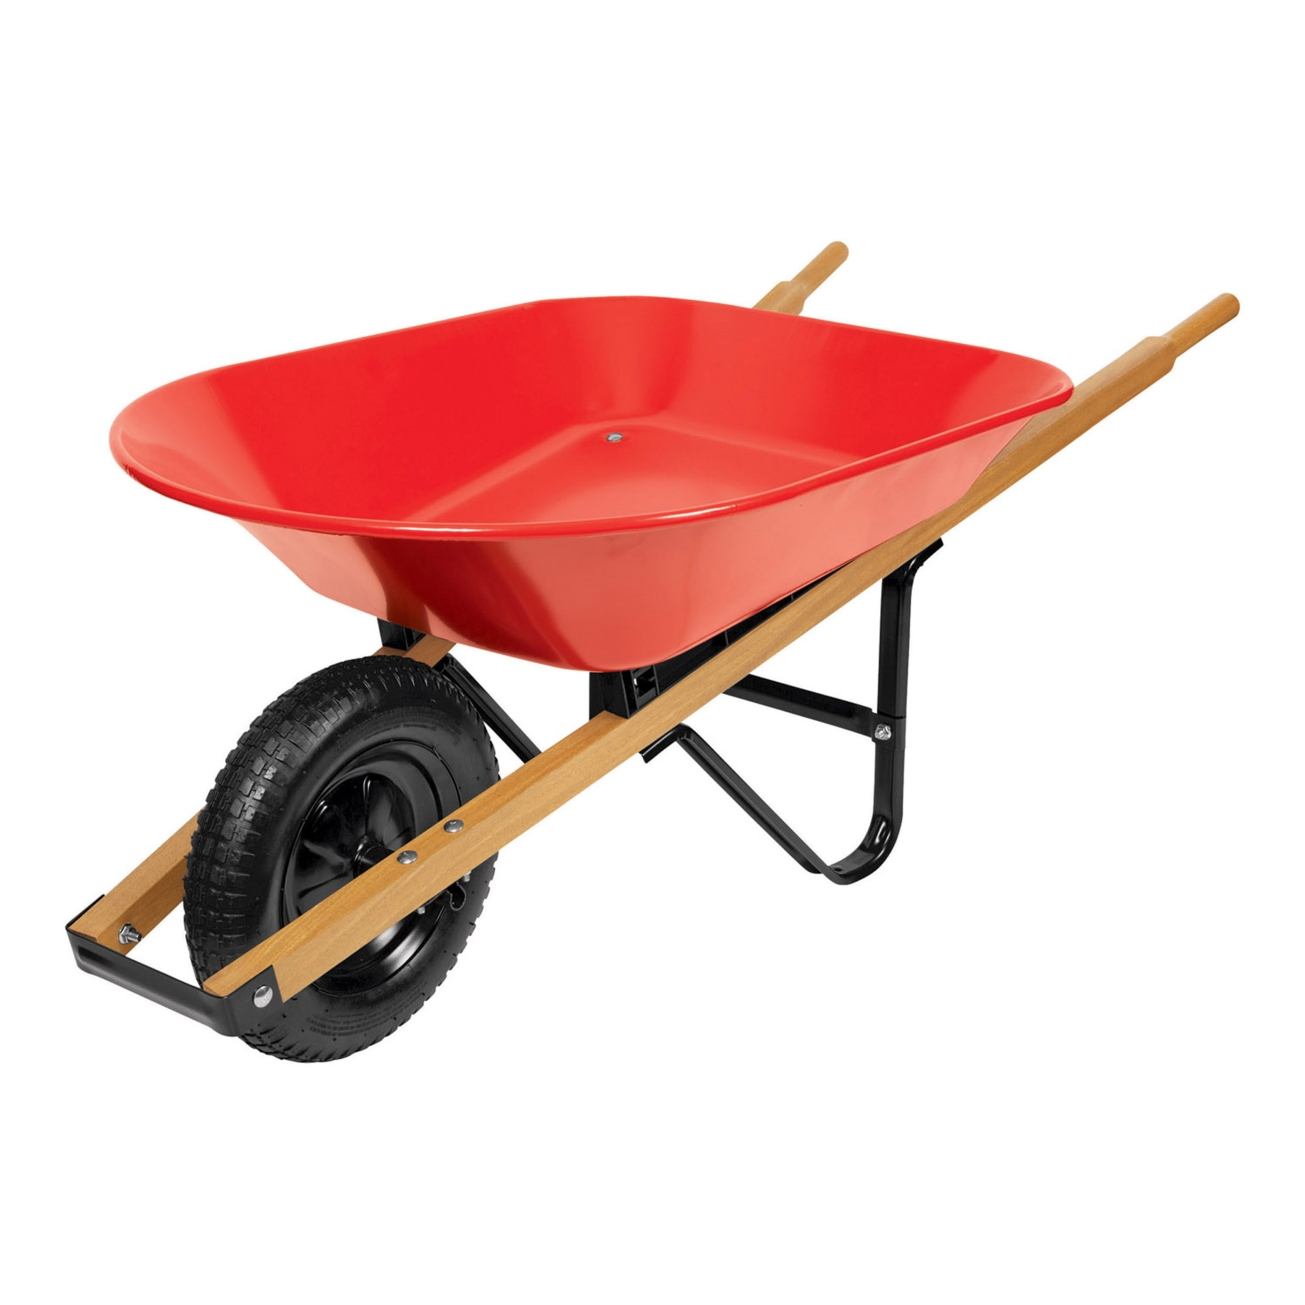 Wheelbarrows - Steel and Contractor Wheelbarrows at Ace Hardware ... png freeuse download